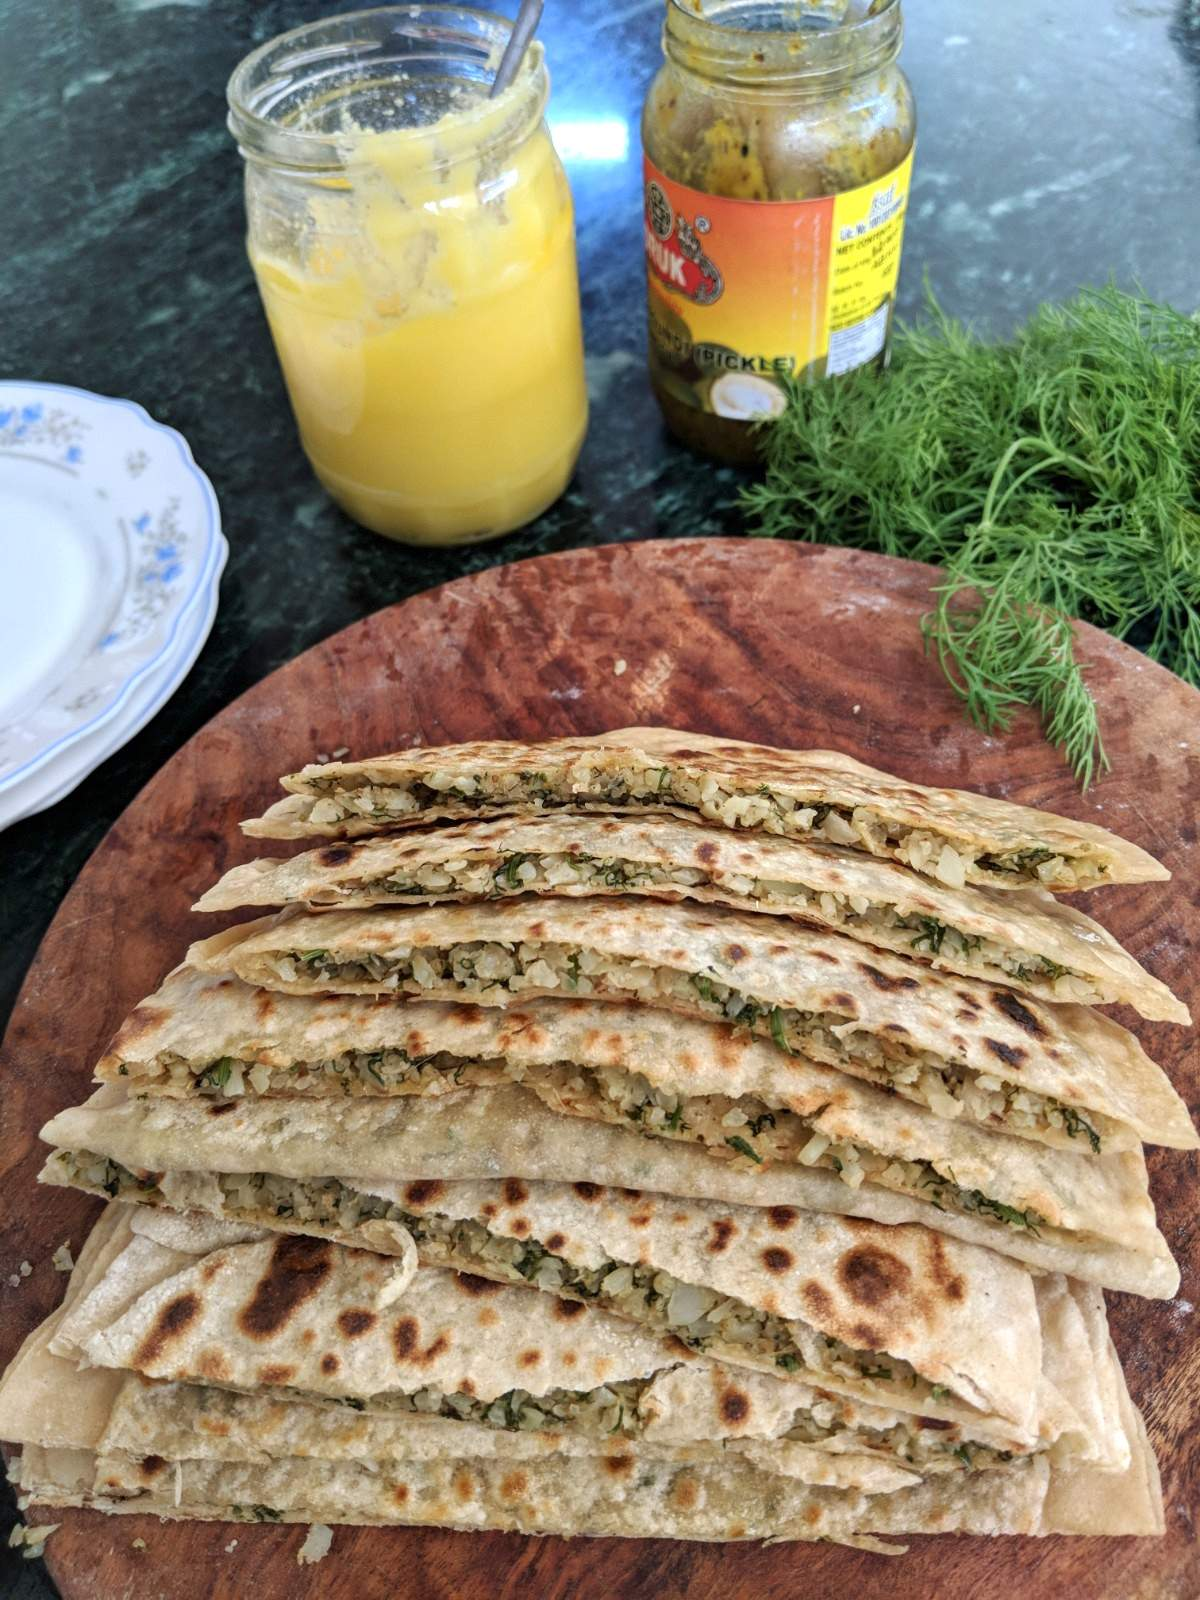 cauliflower parathas - gobhi paratha recipe with dill